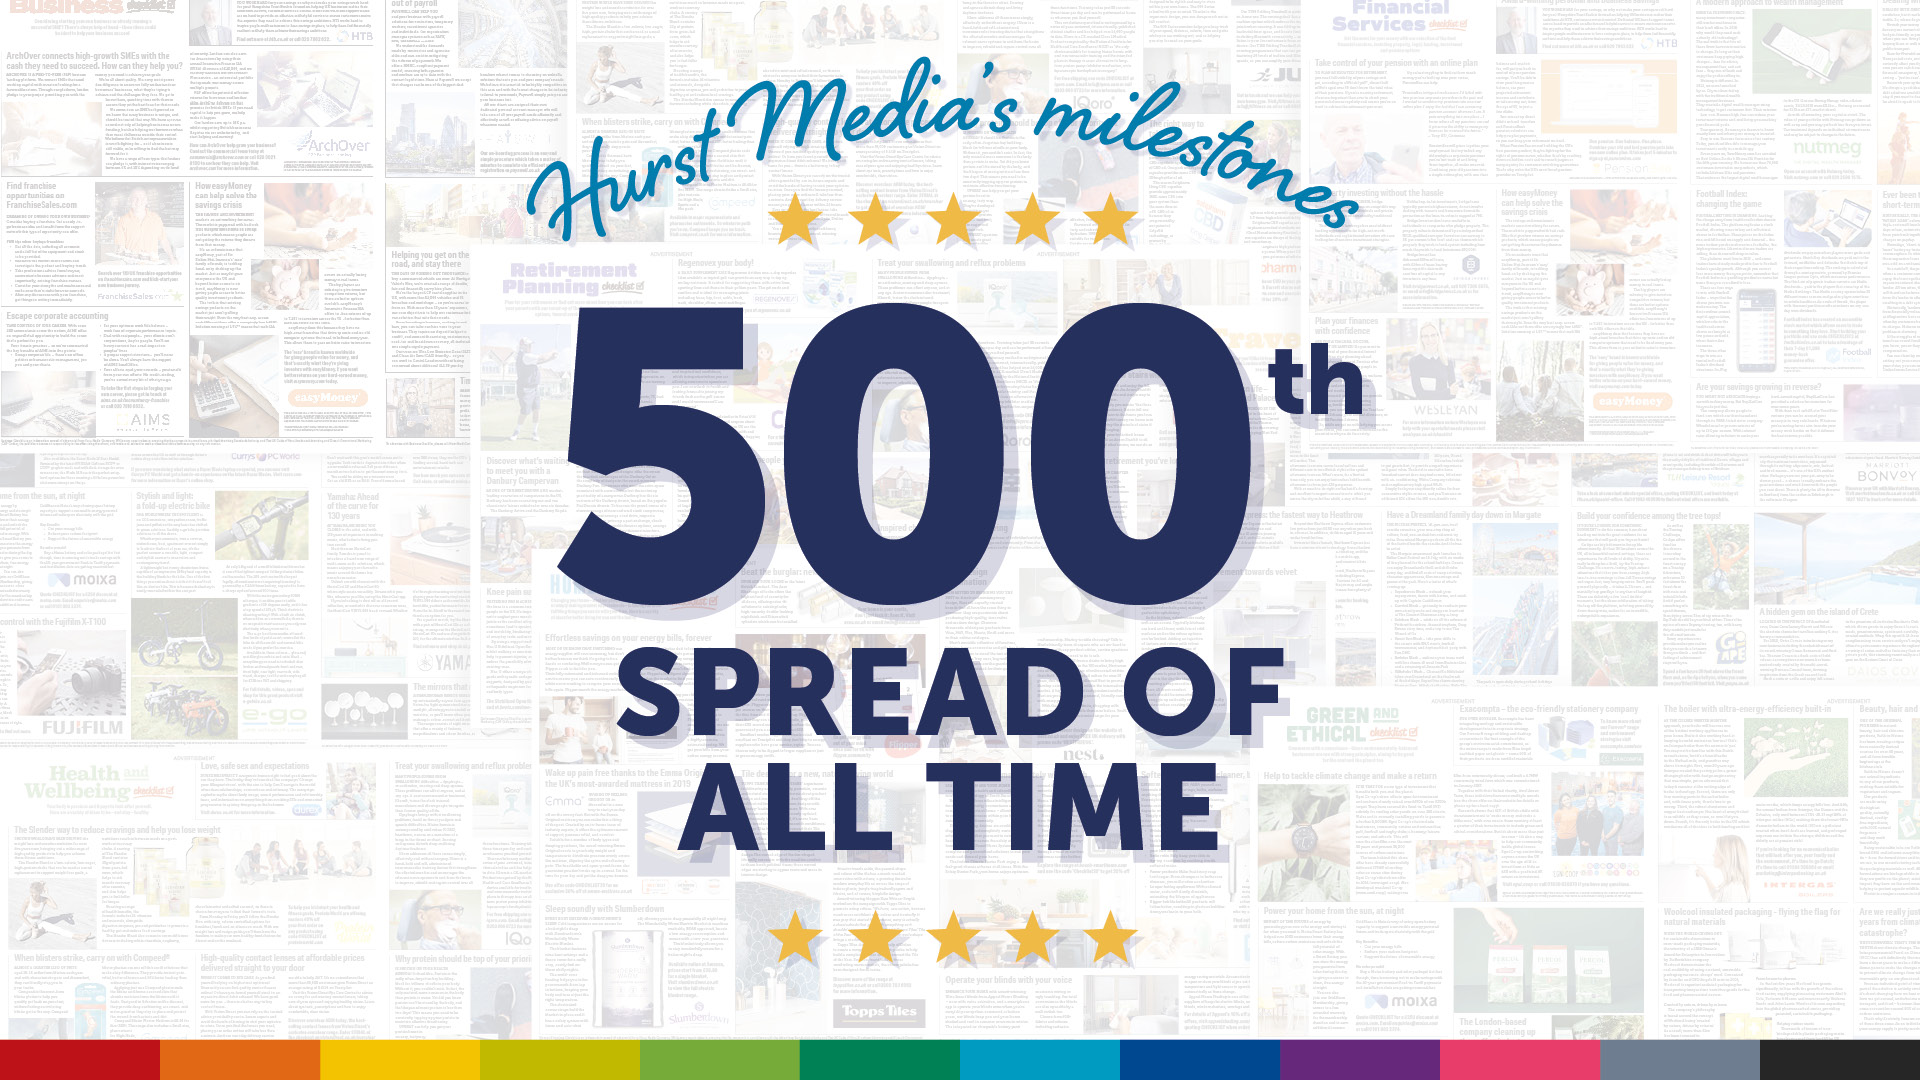 The Times Publishes Hurst's 500th spread